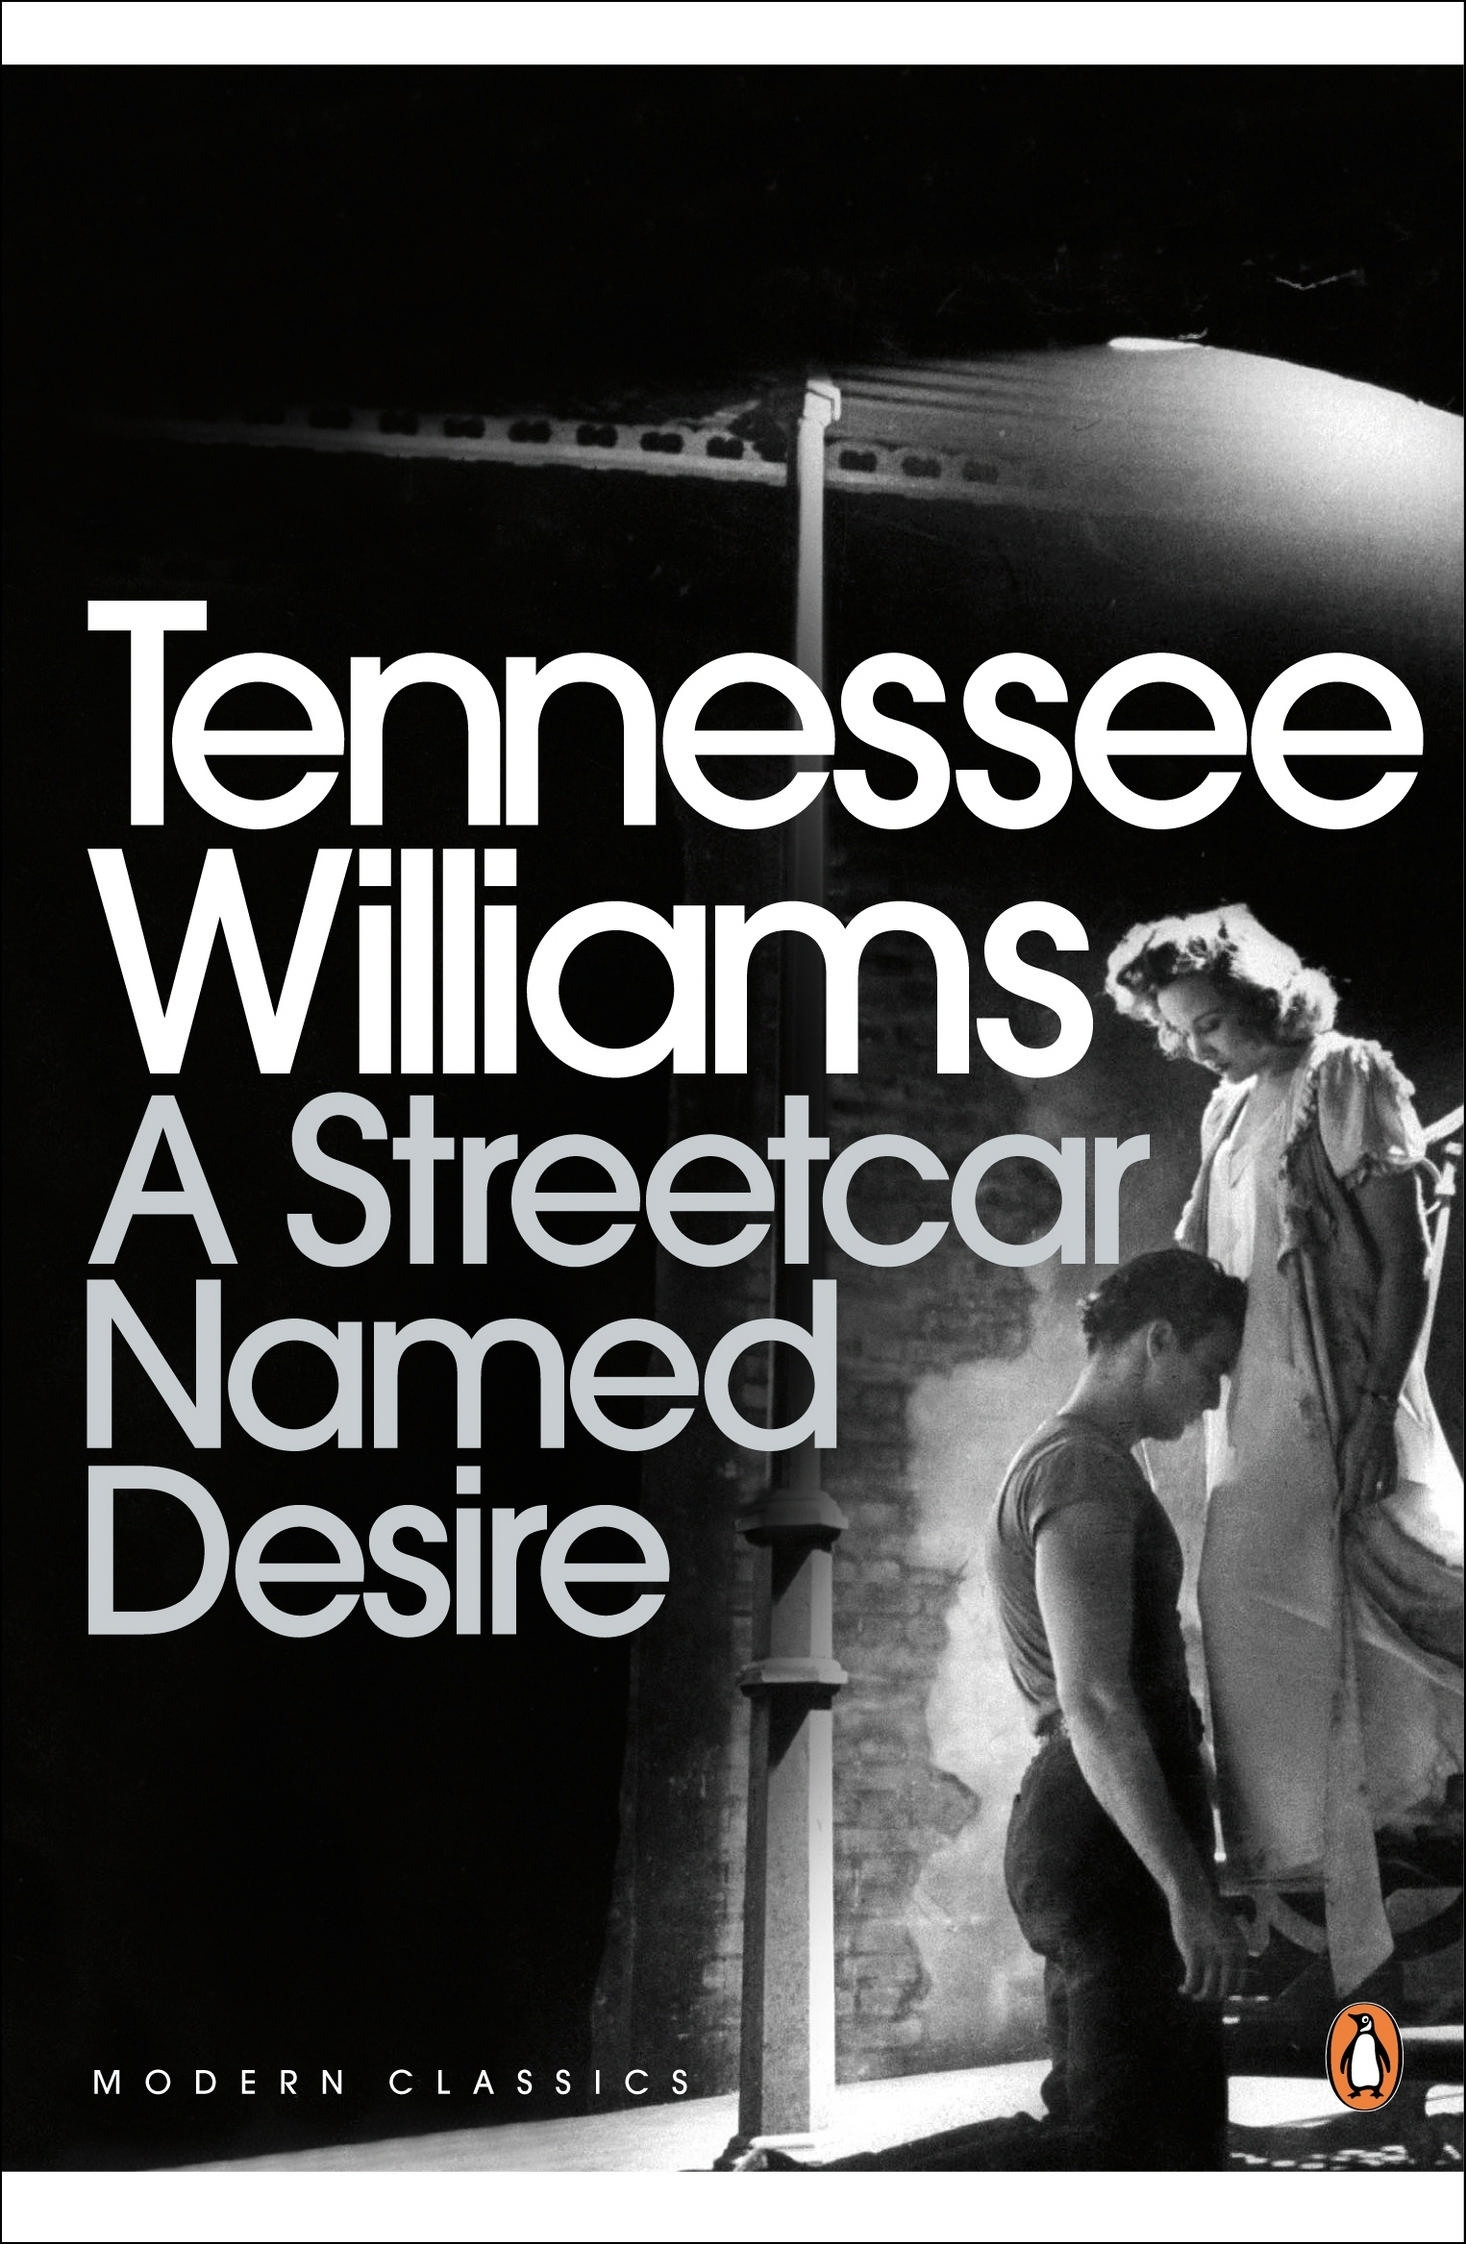 Book Cover: A Streetcar Named Desire